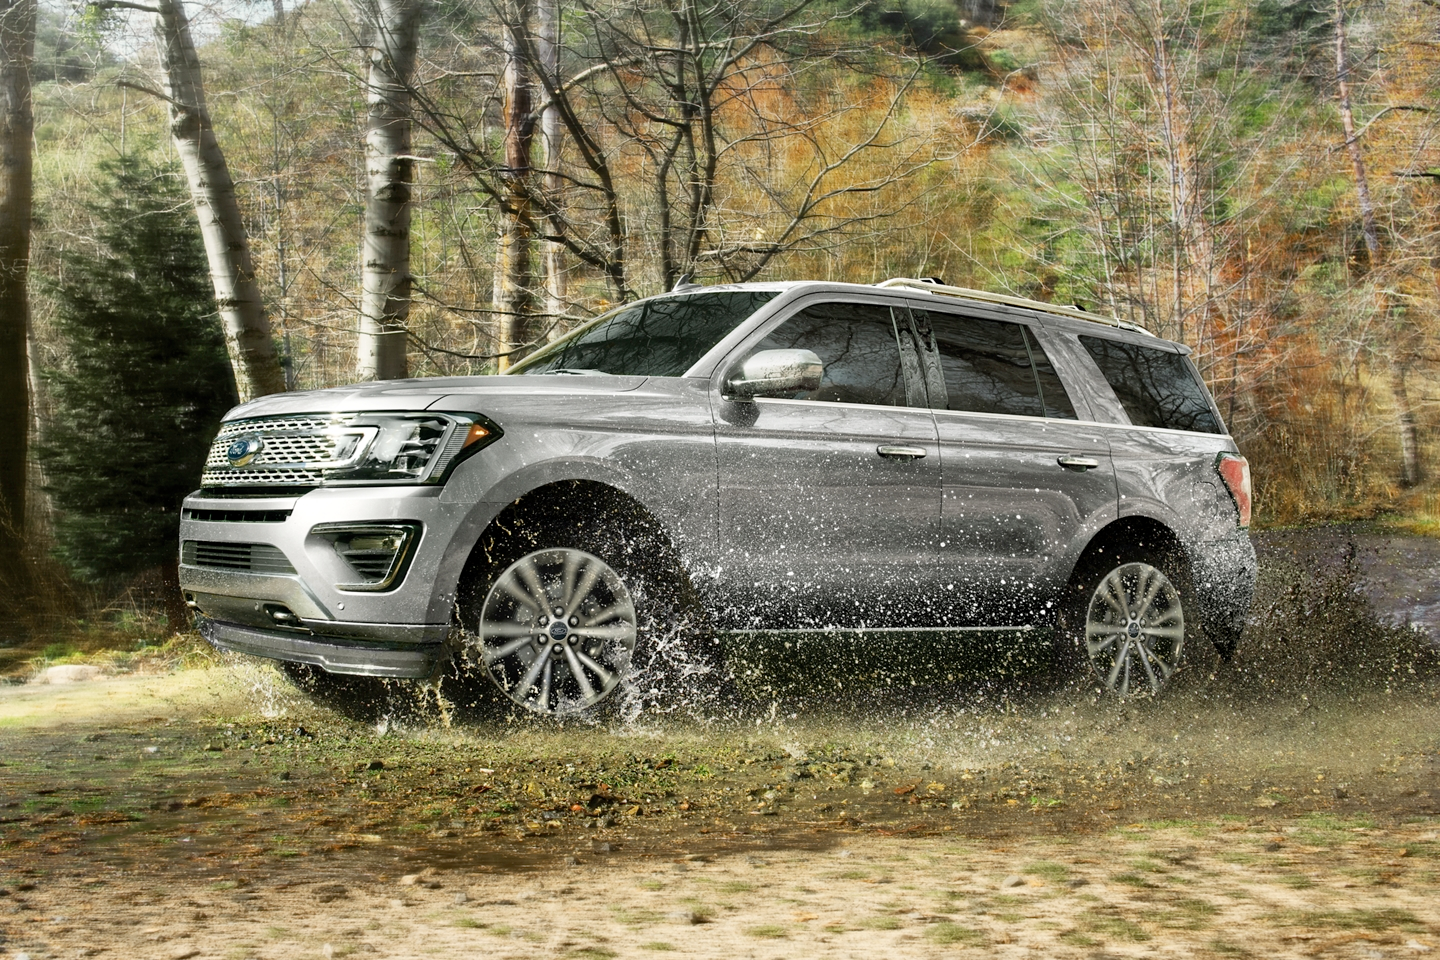 2020 Ford Expedition - Expedition Power